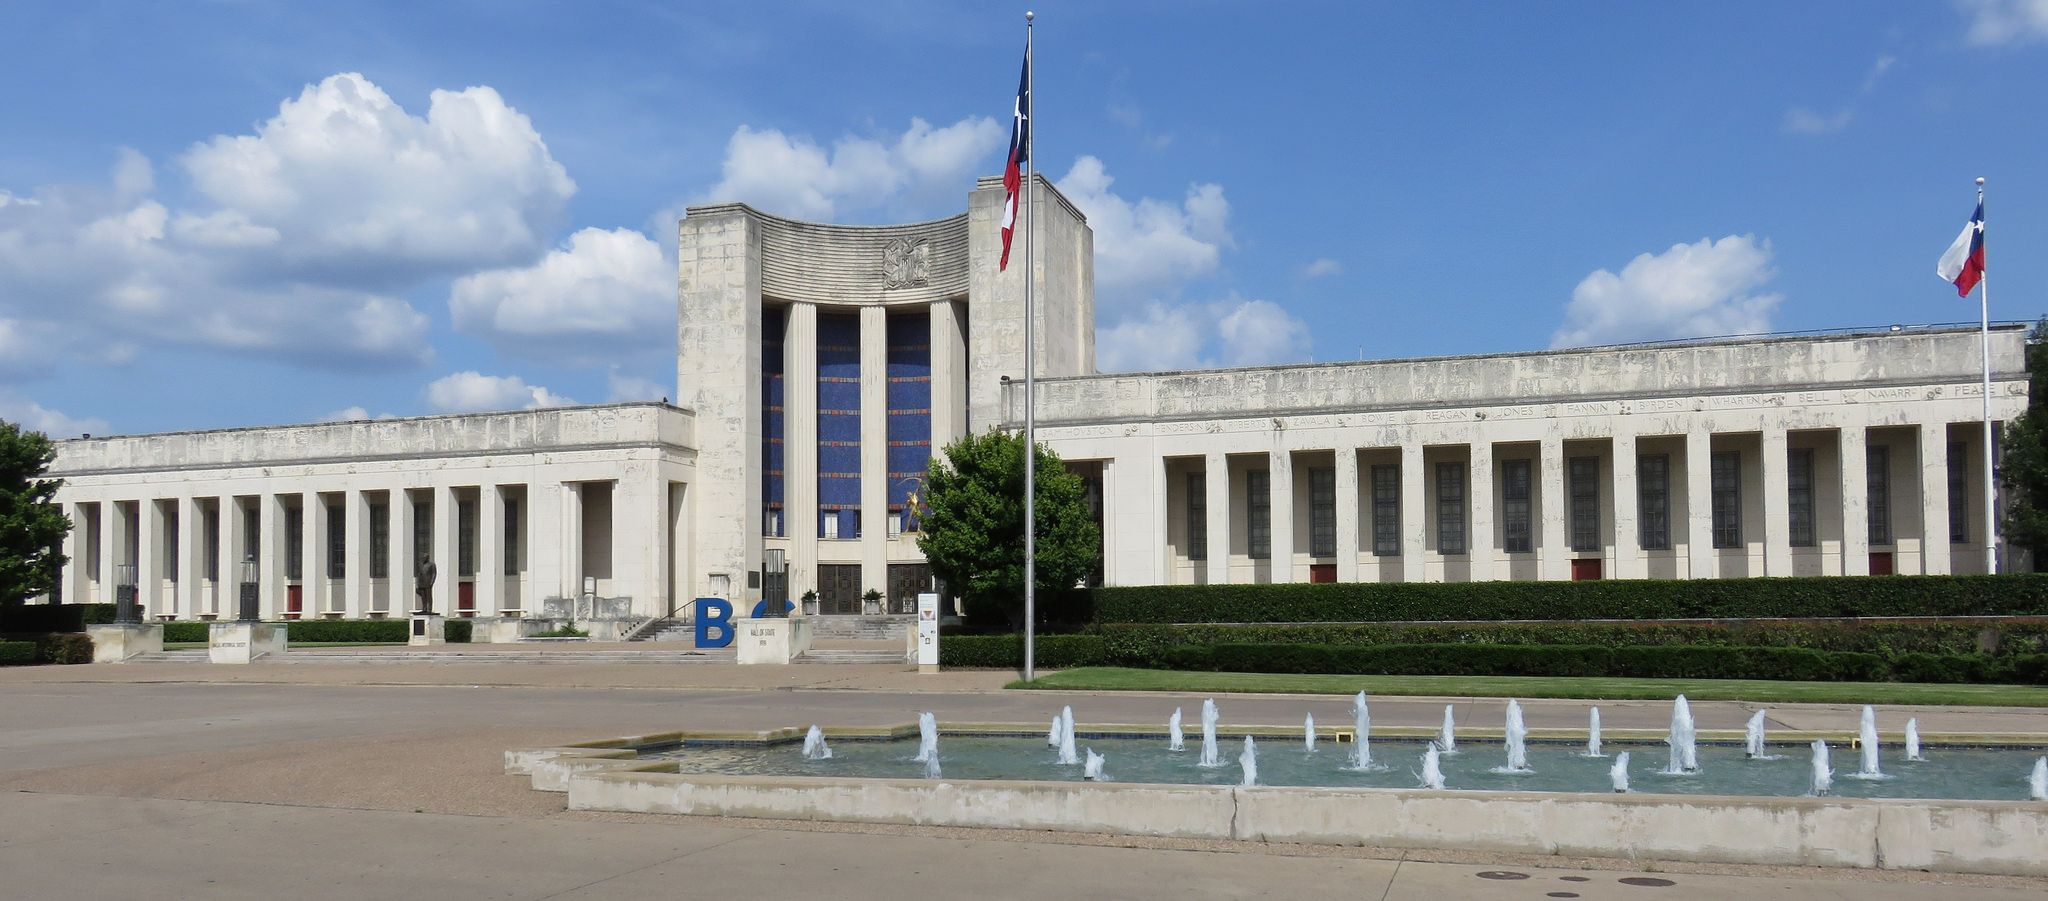 The Hall of State (originally the State of Texas Building) is a building in Dallas's Fair Park that commemorates the history of the U.S. state of Texas and is considered one of the best examples of Art Deco architecture in the state.